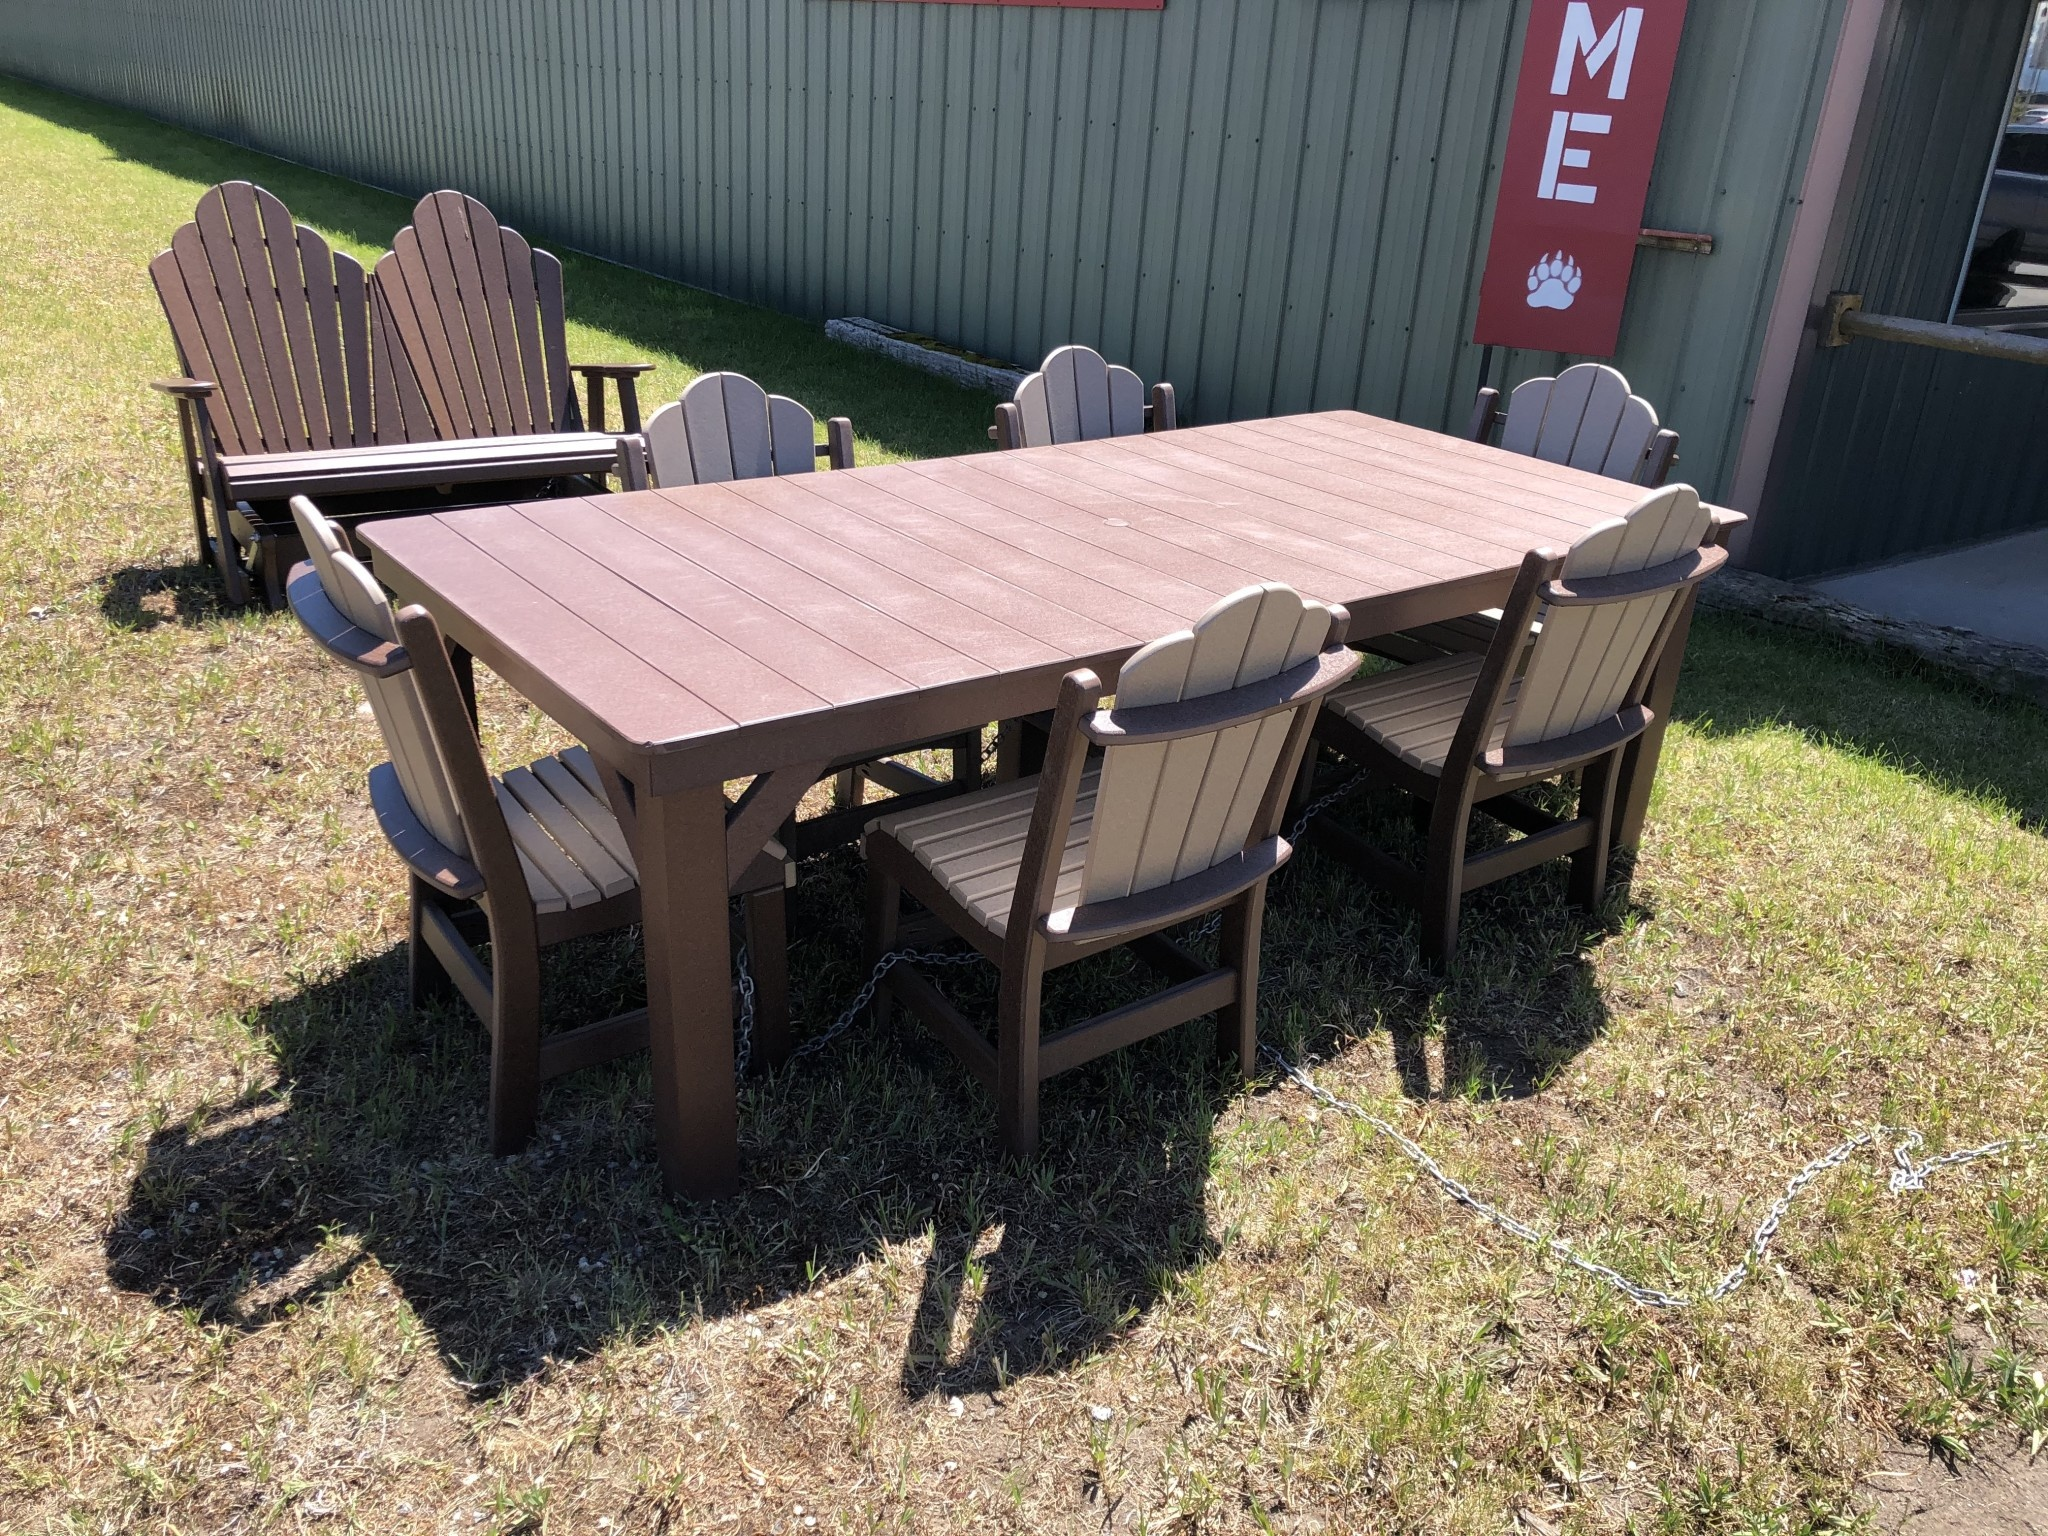 Co-ALBC Poly Outdoor table 96x44x30.5